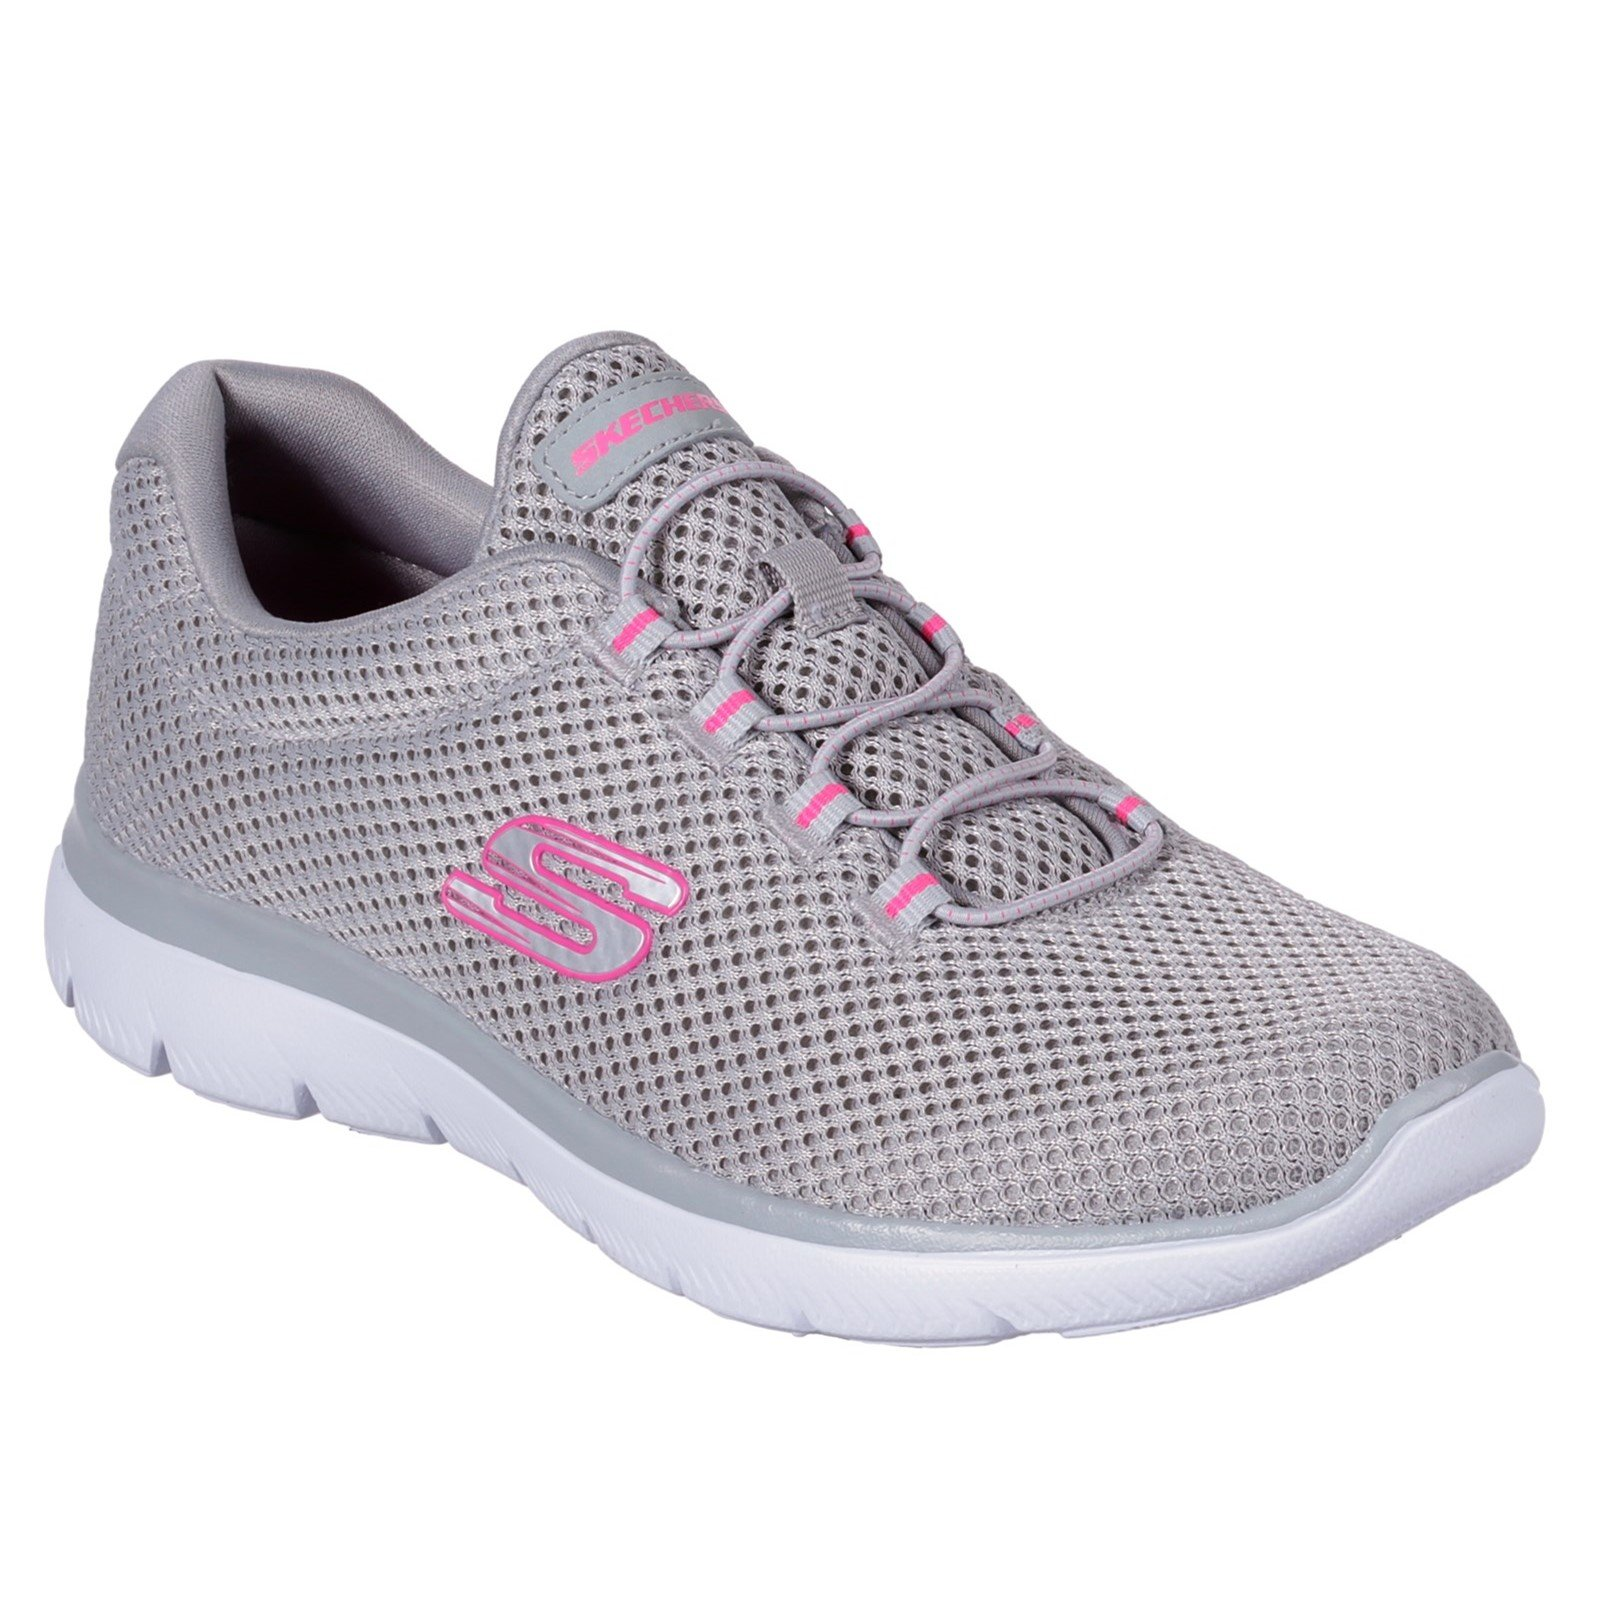 Skechers Women's Summits Slip On Trainer Various Colours 30708 - Grey/Hot pink 7